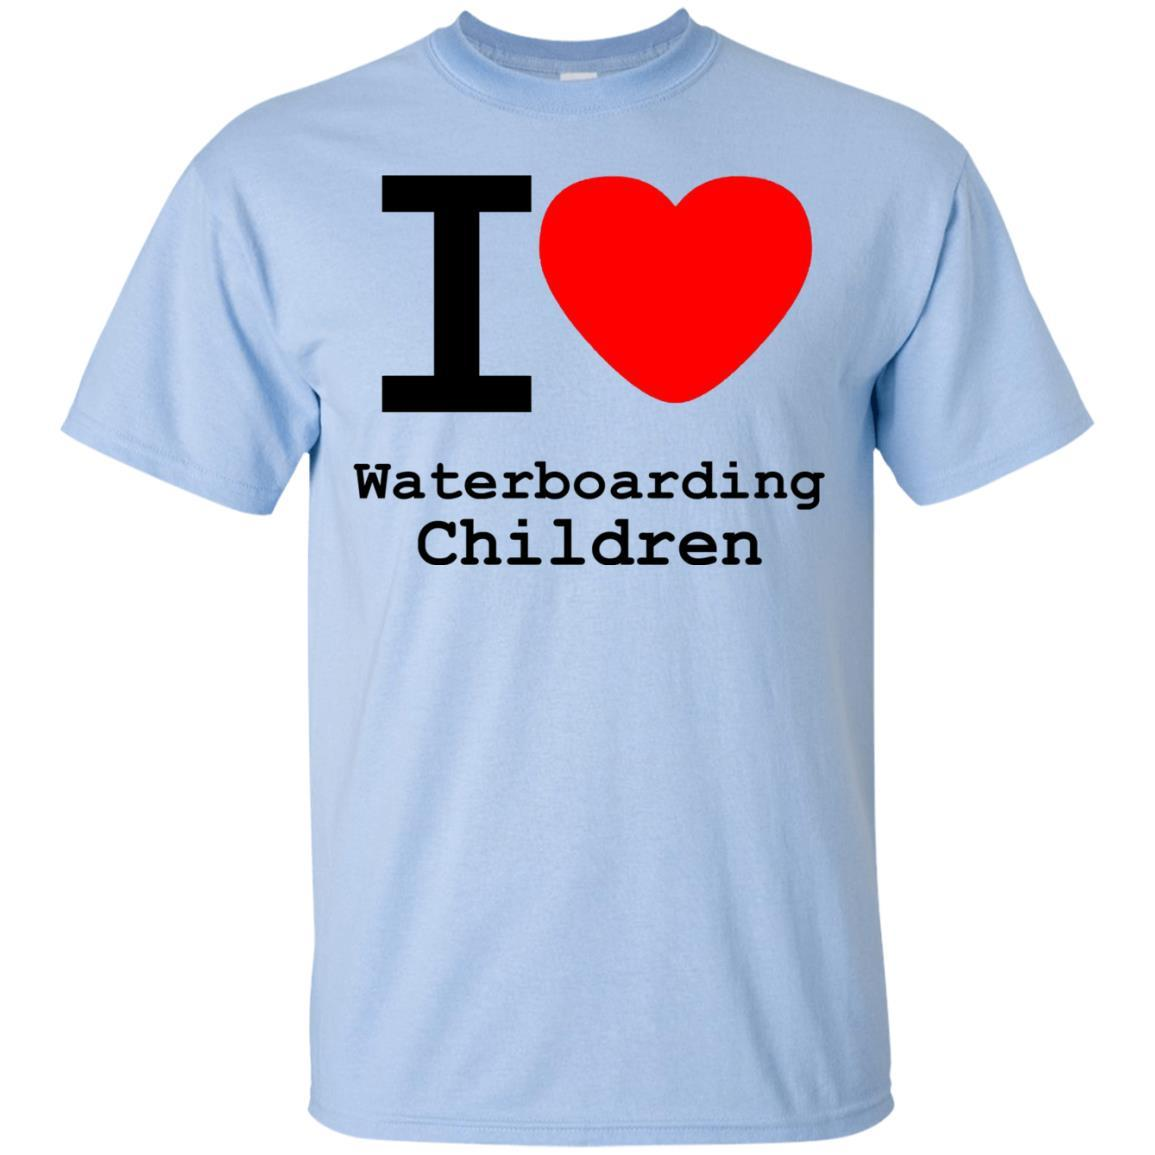 I love Waterboarding Children T-Shirt Light Blue / 5XL